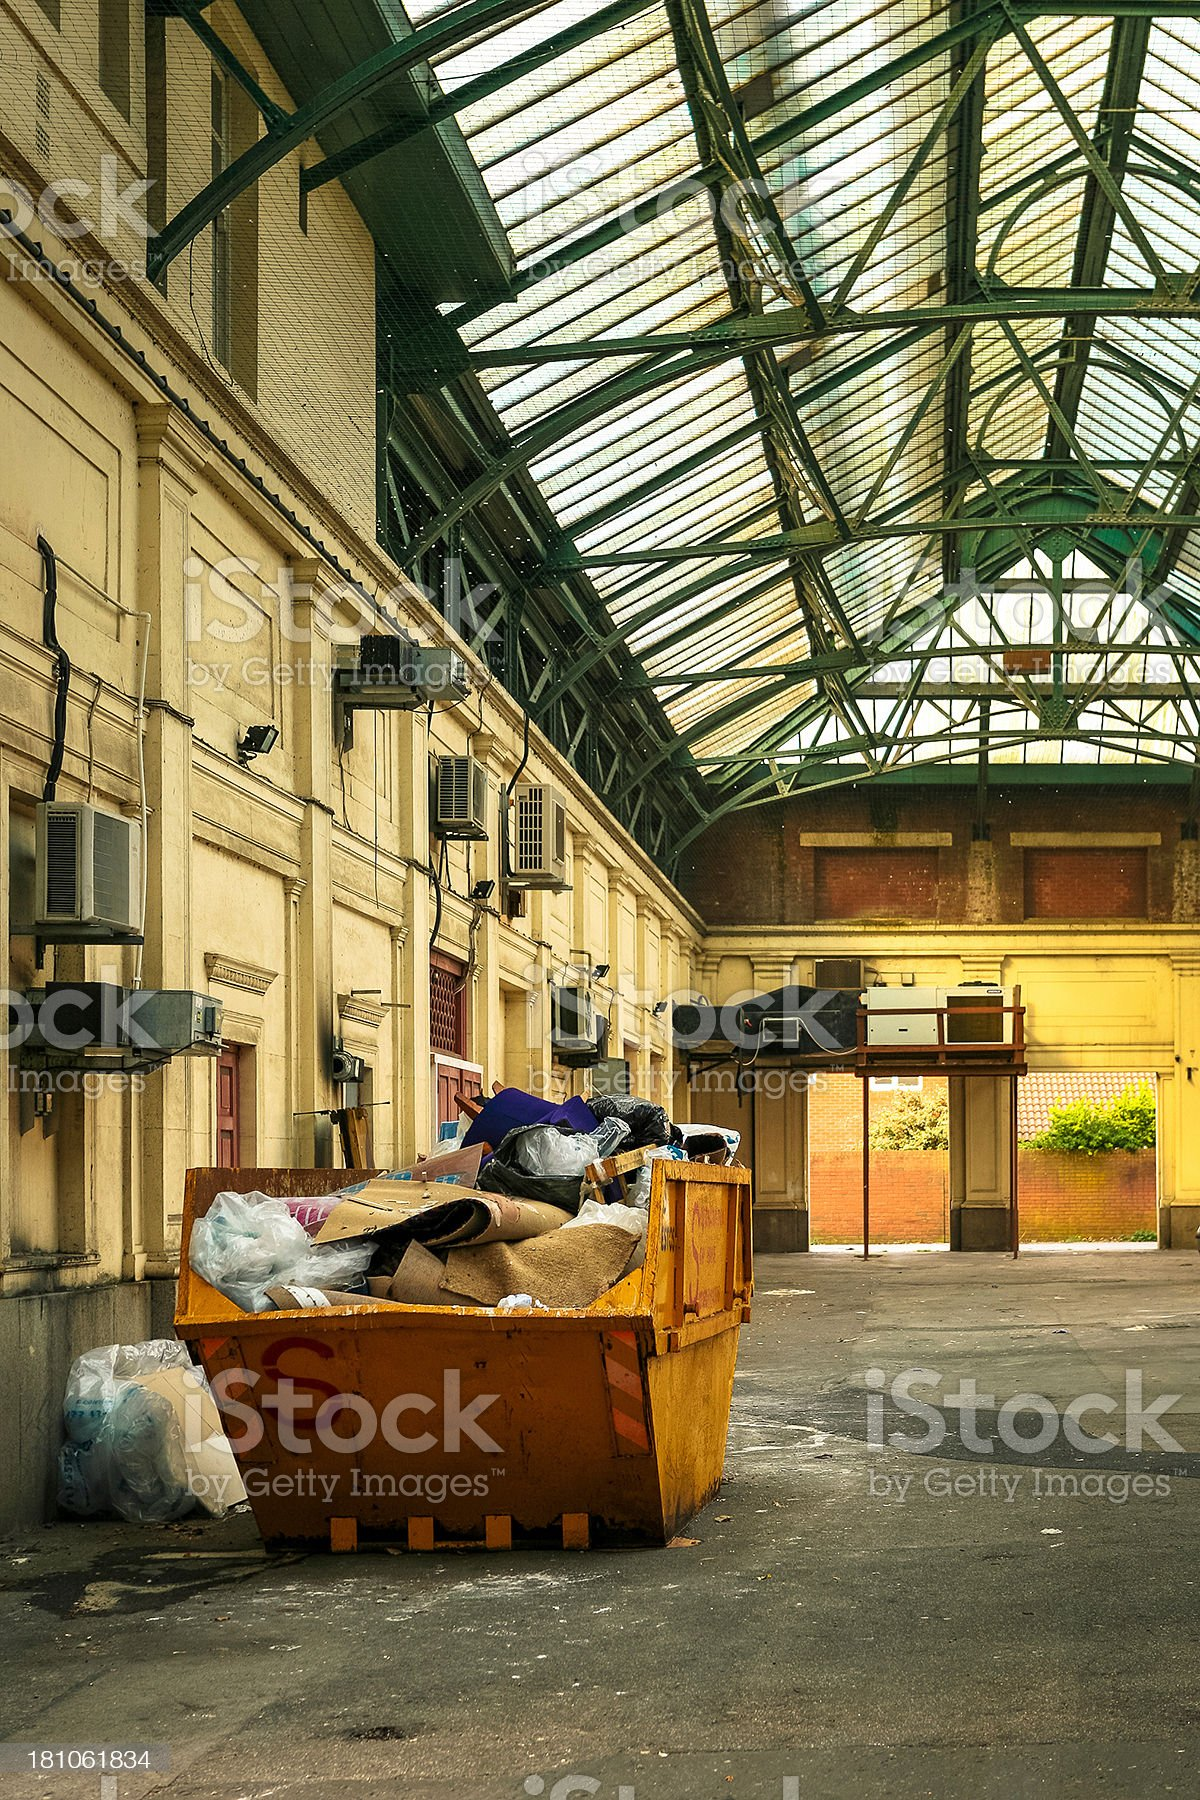 Rubbish skip in an industrial area royalty-free stock photo